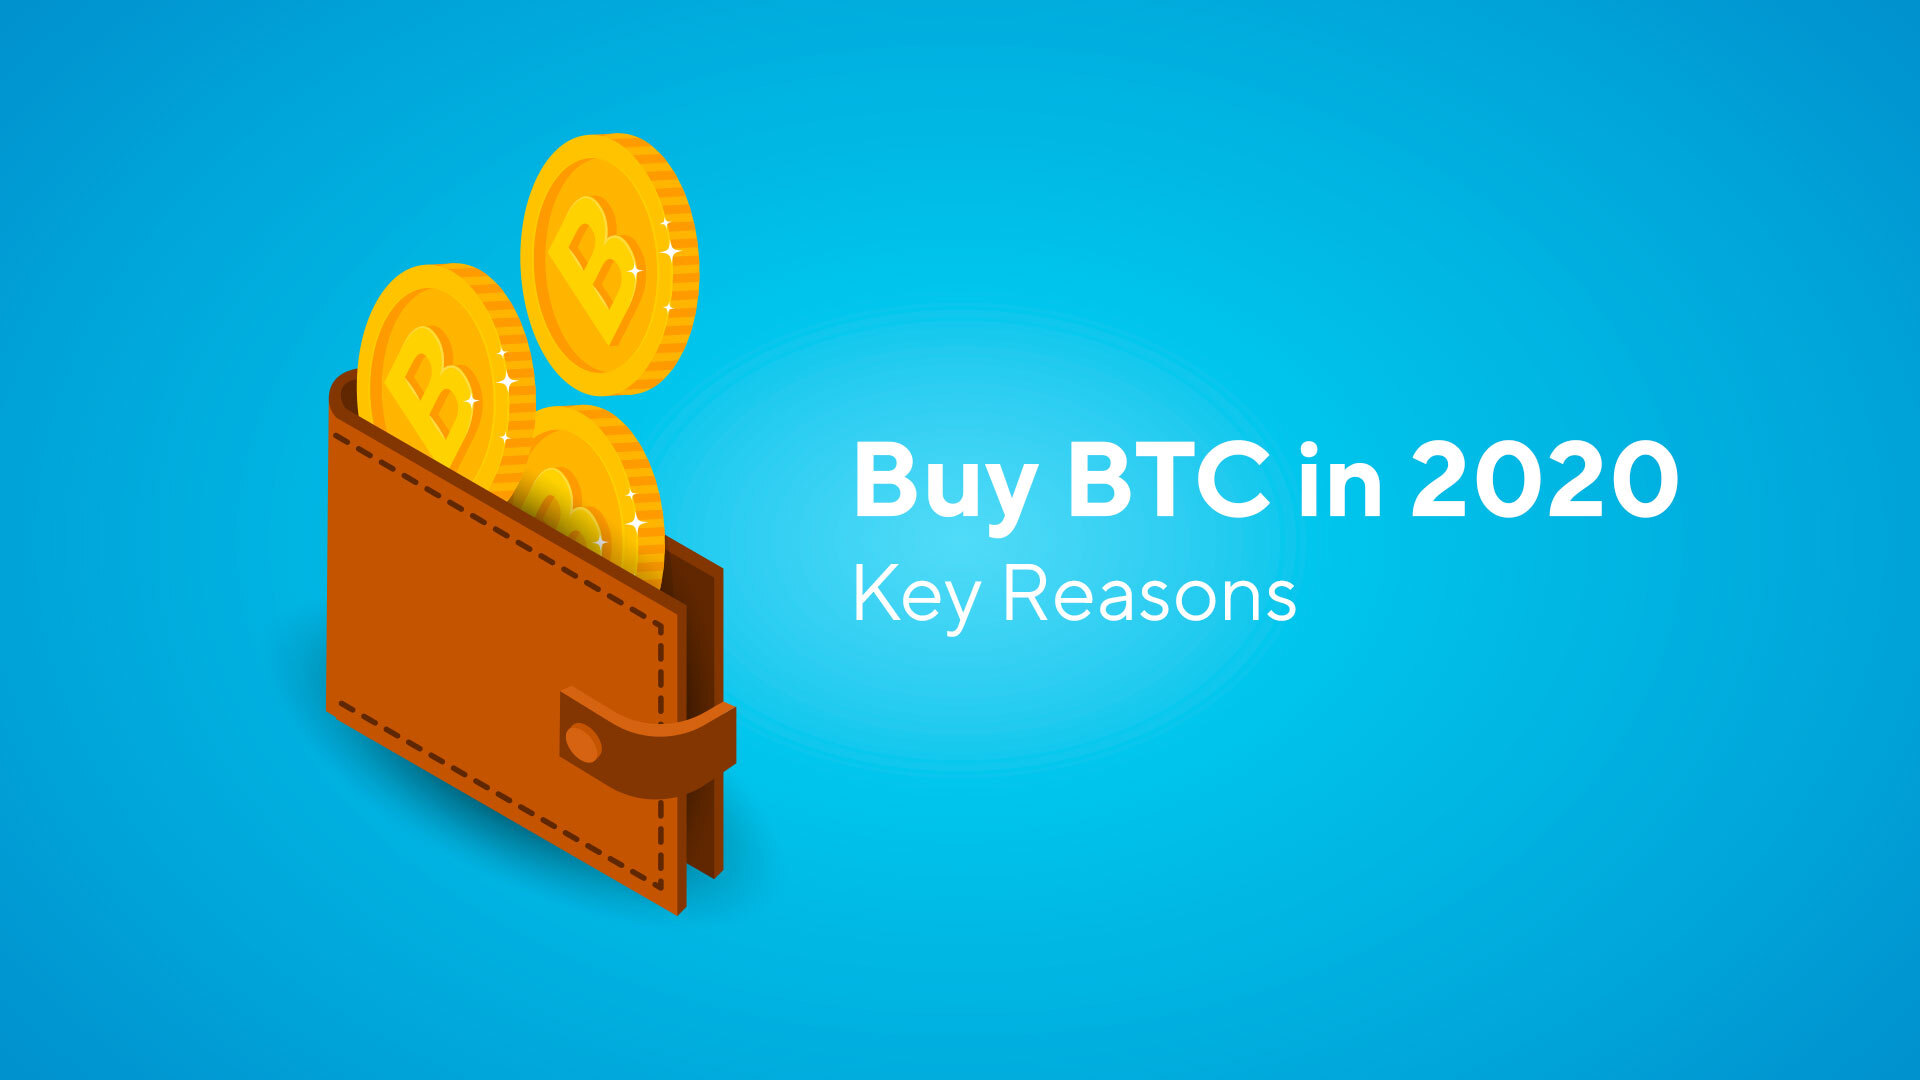 Key Reasons to Buy Bitcoin in 2020